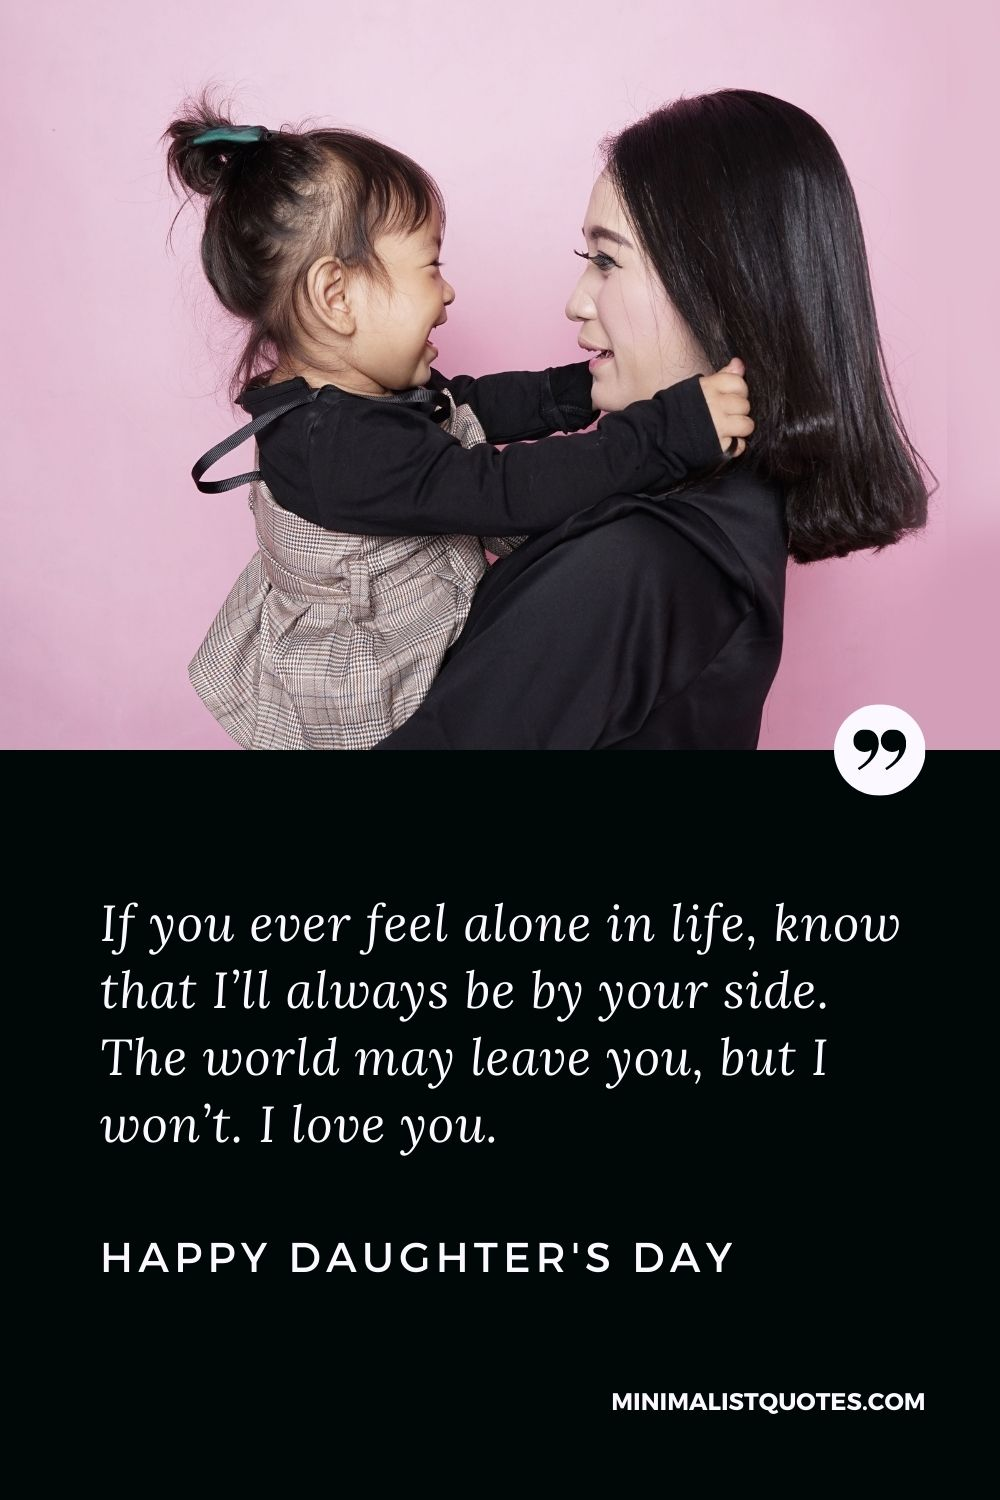 Daughter's Day Wish, Message & Quote With Image: If you ever feel alone in life, know that I'll always be by your side. The world may leave you, but I won't. I love you. Happy Daughter's Day!